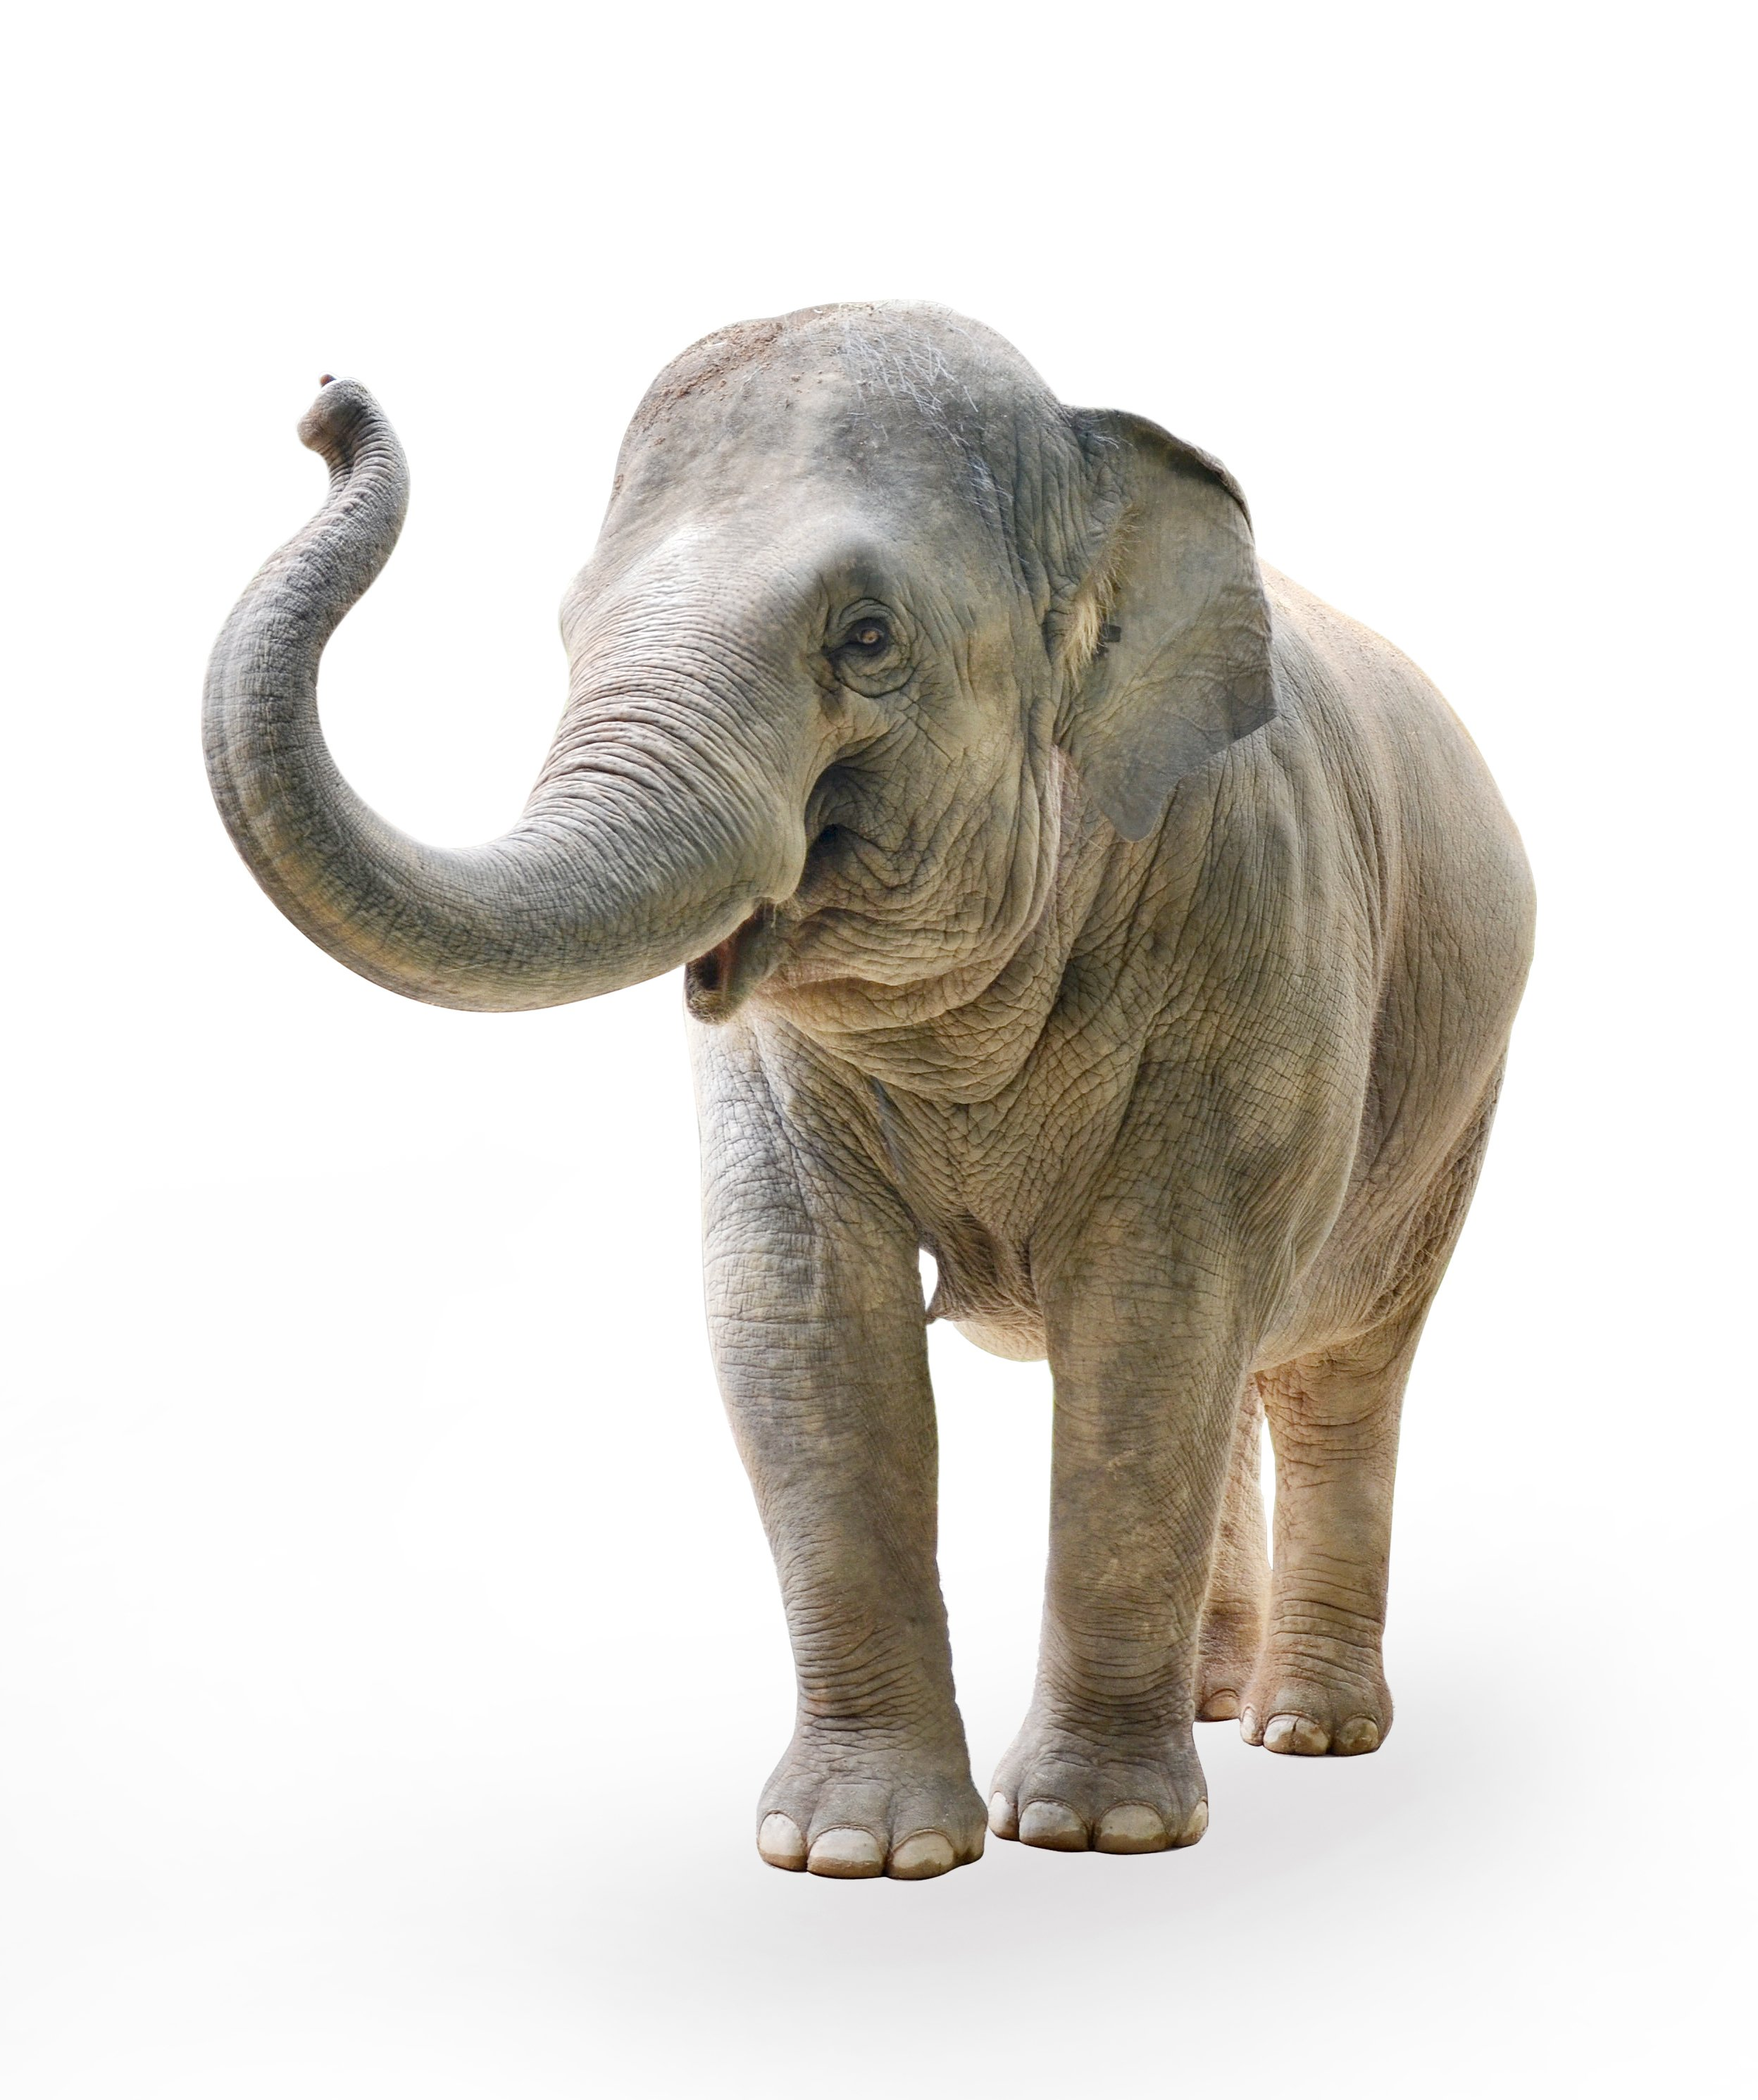 A photo of an elephant on a white background. | Photo: Shutterstock.